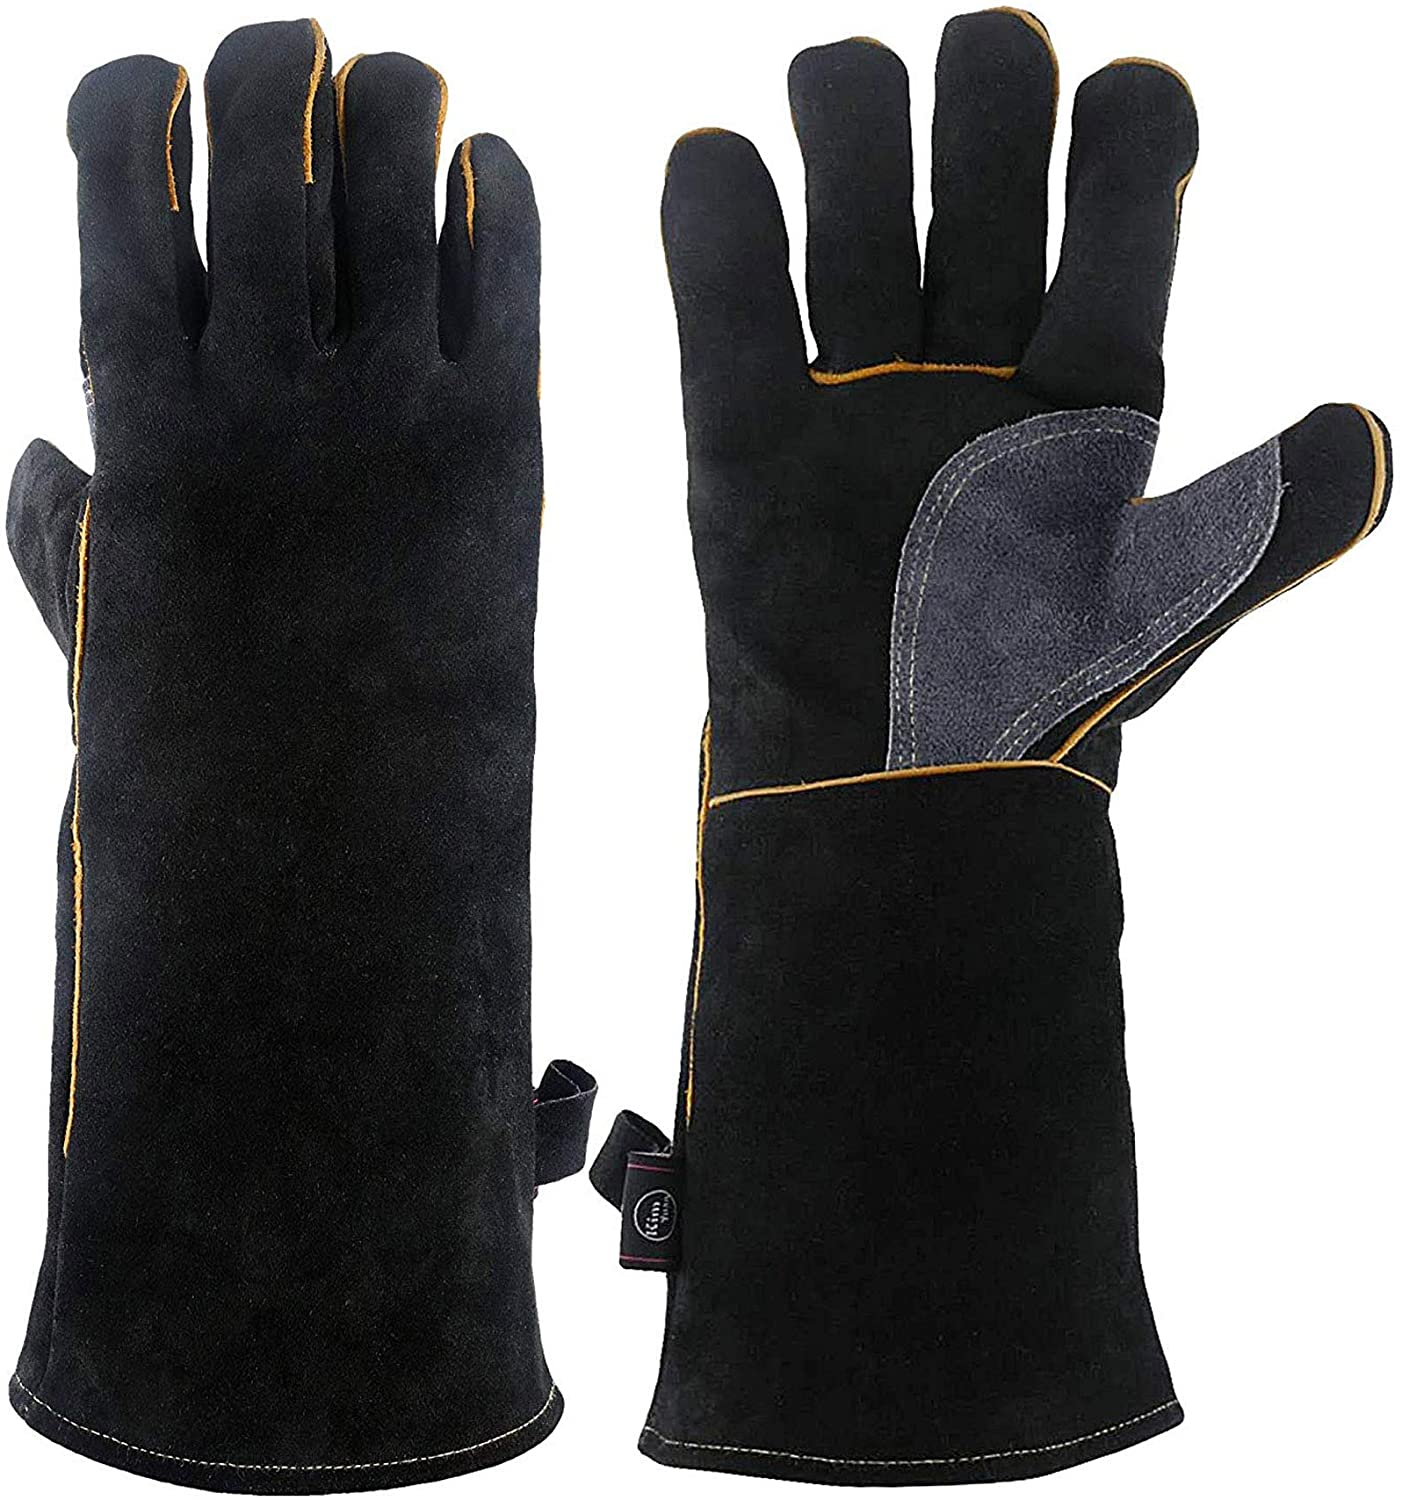 KIM YUAN Extreme Heat Fire Resistant Gloves Leather with Kevlar Stitching, Mitts Perfect for Welding